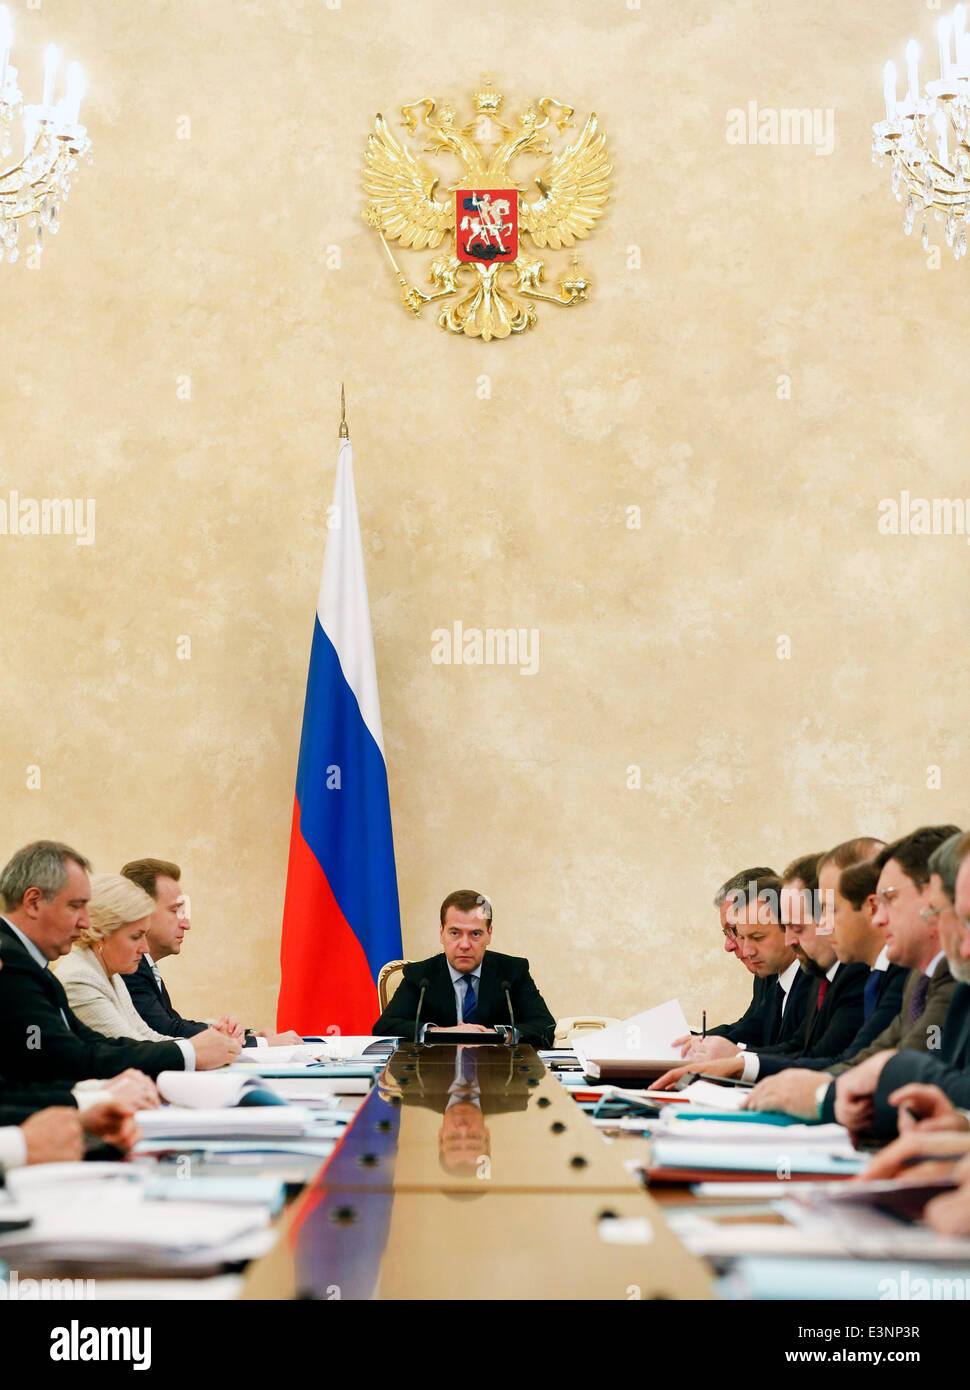 ITAR-TASS: MOSCOW, RUSSIA. JUNE 26, 2014. Russia's prime minister Dmitry Medvedev (C) holds a meeting of the government Stock Photo